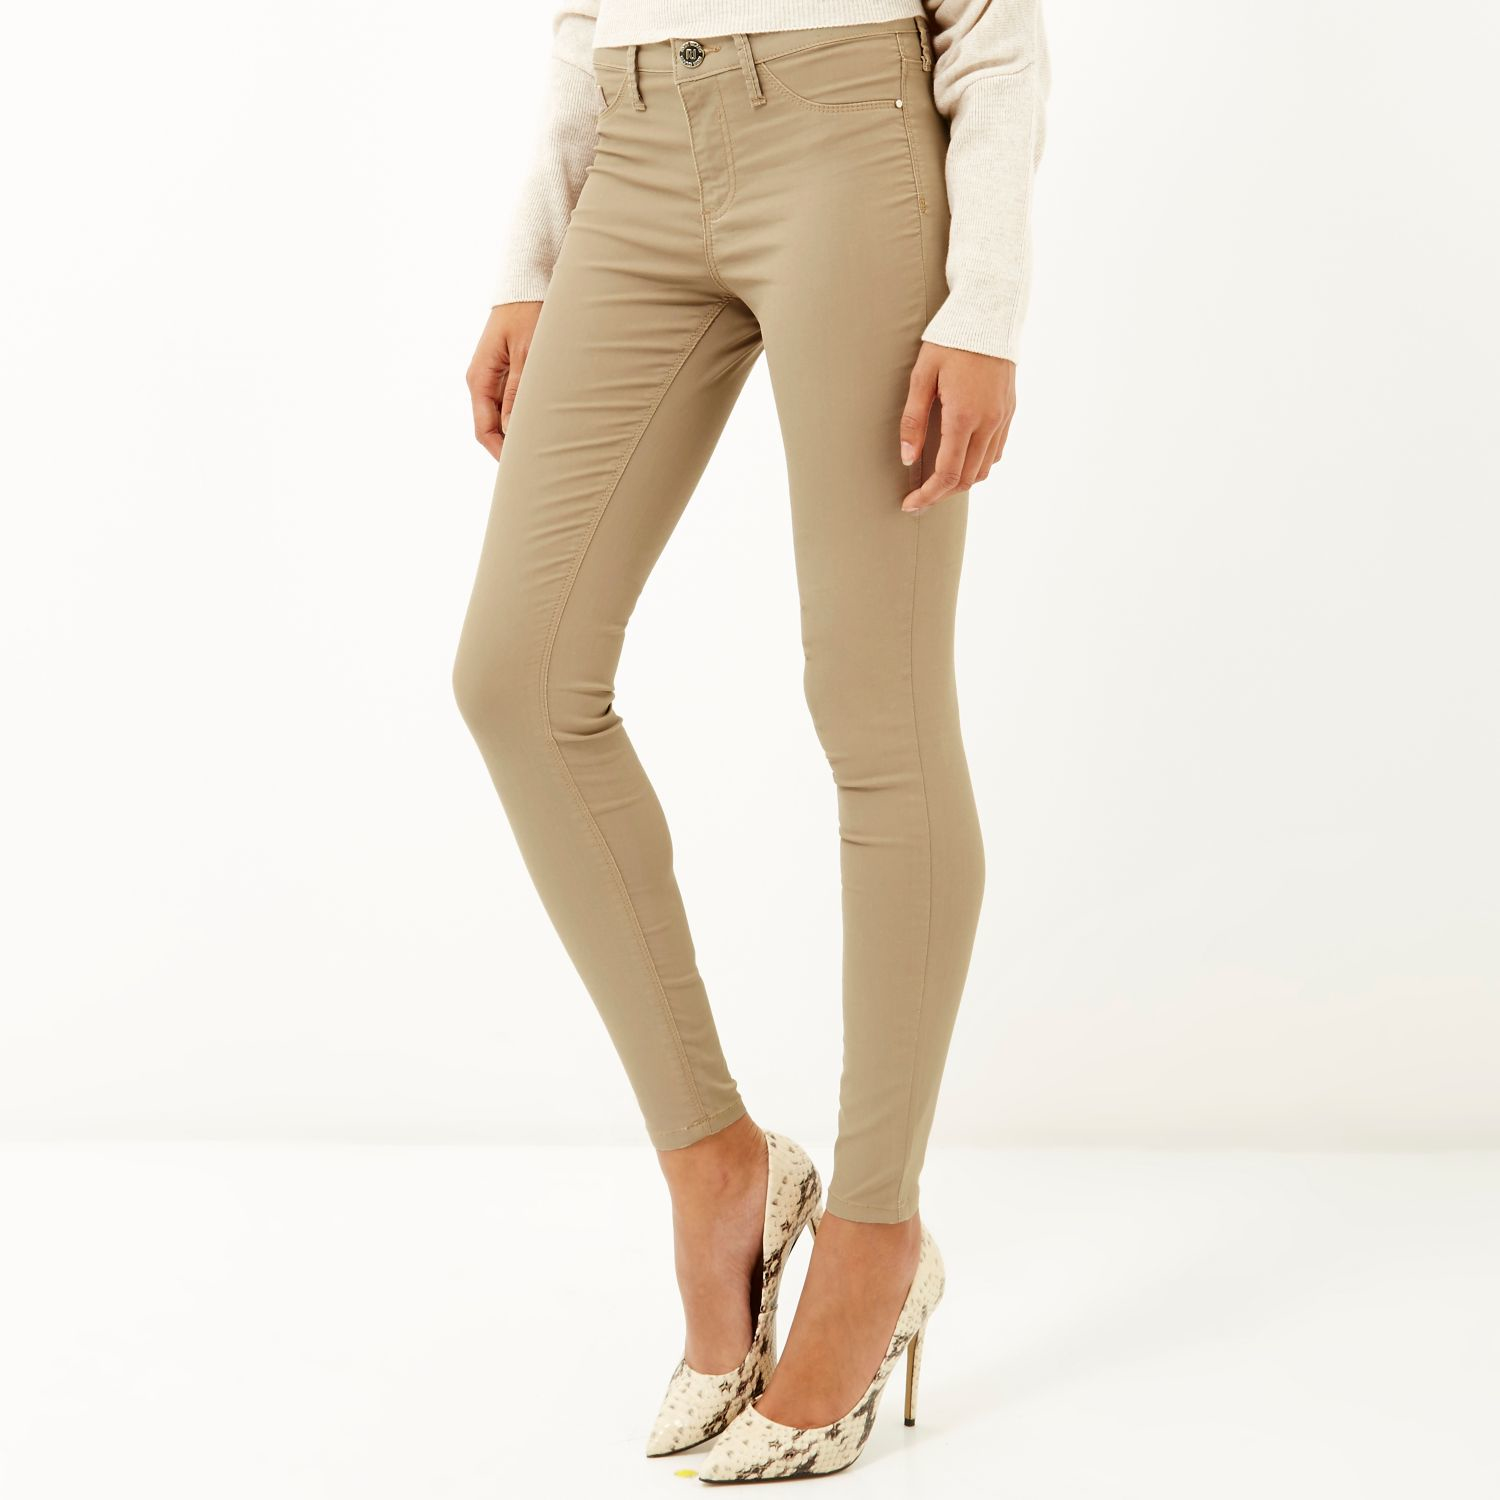 d7642764dc2ce River Island Camel Molly Jeggings - Lyst